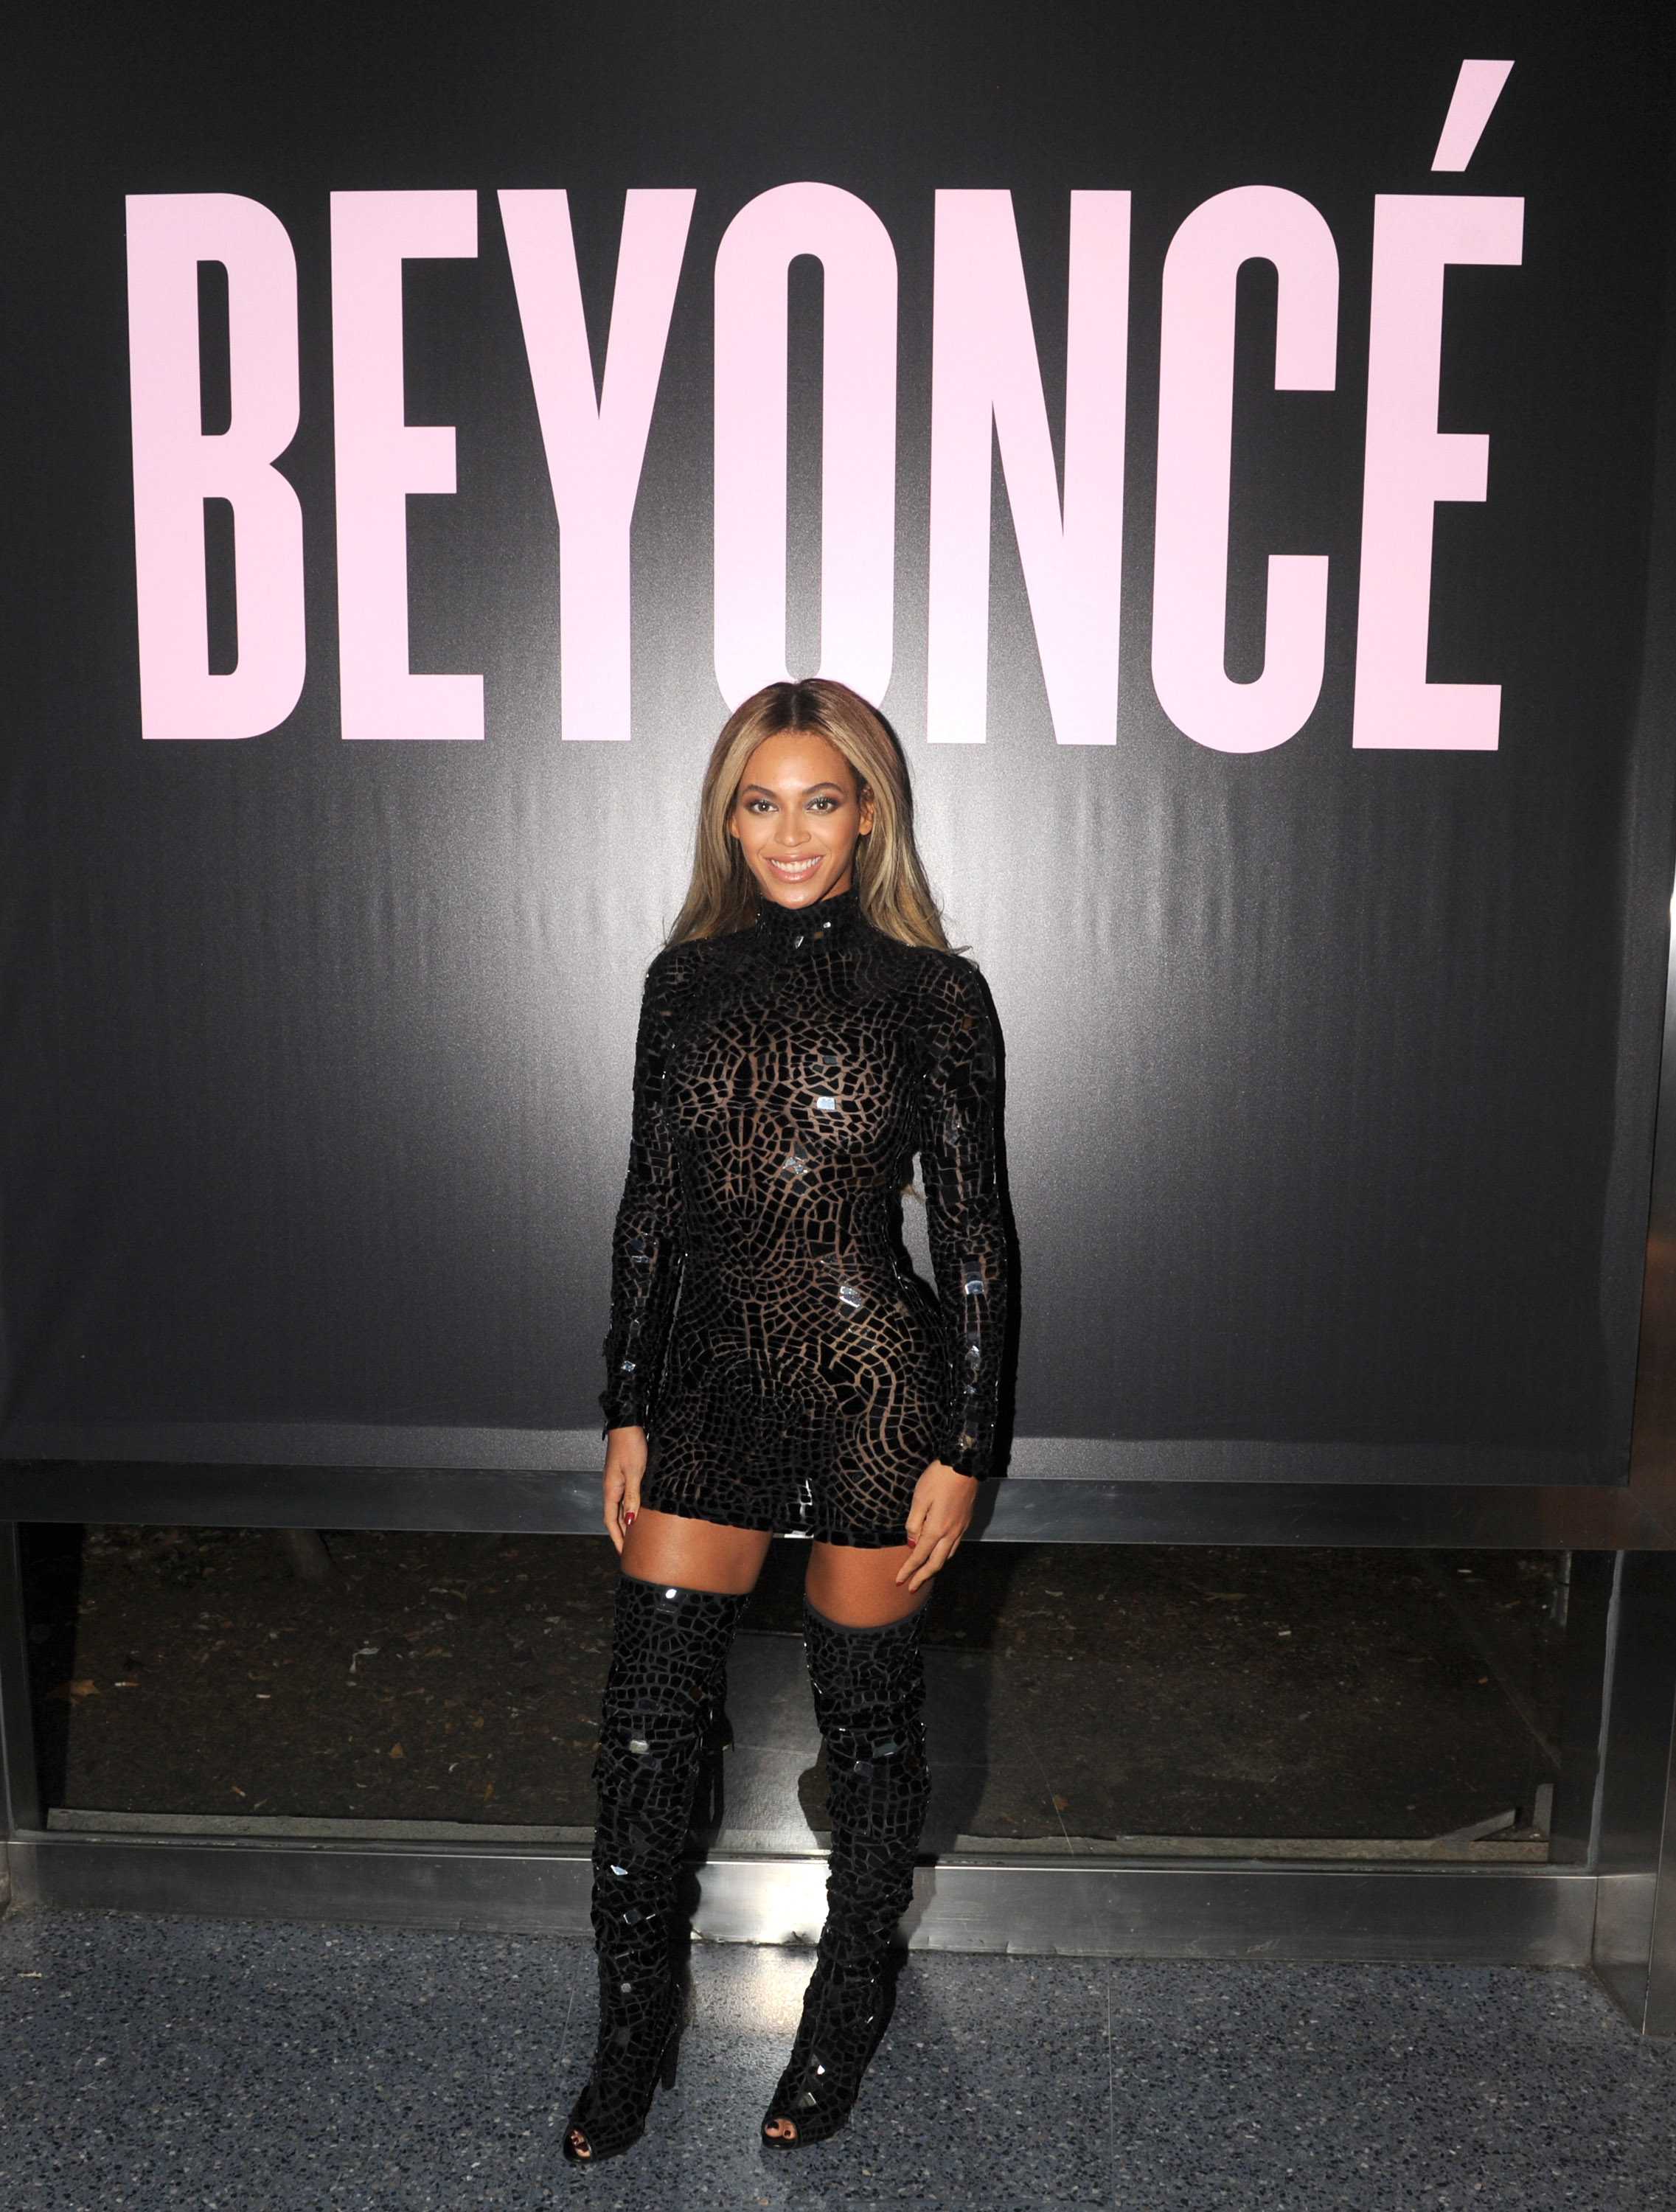 Beyoncé releases self-titled album